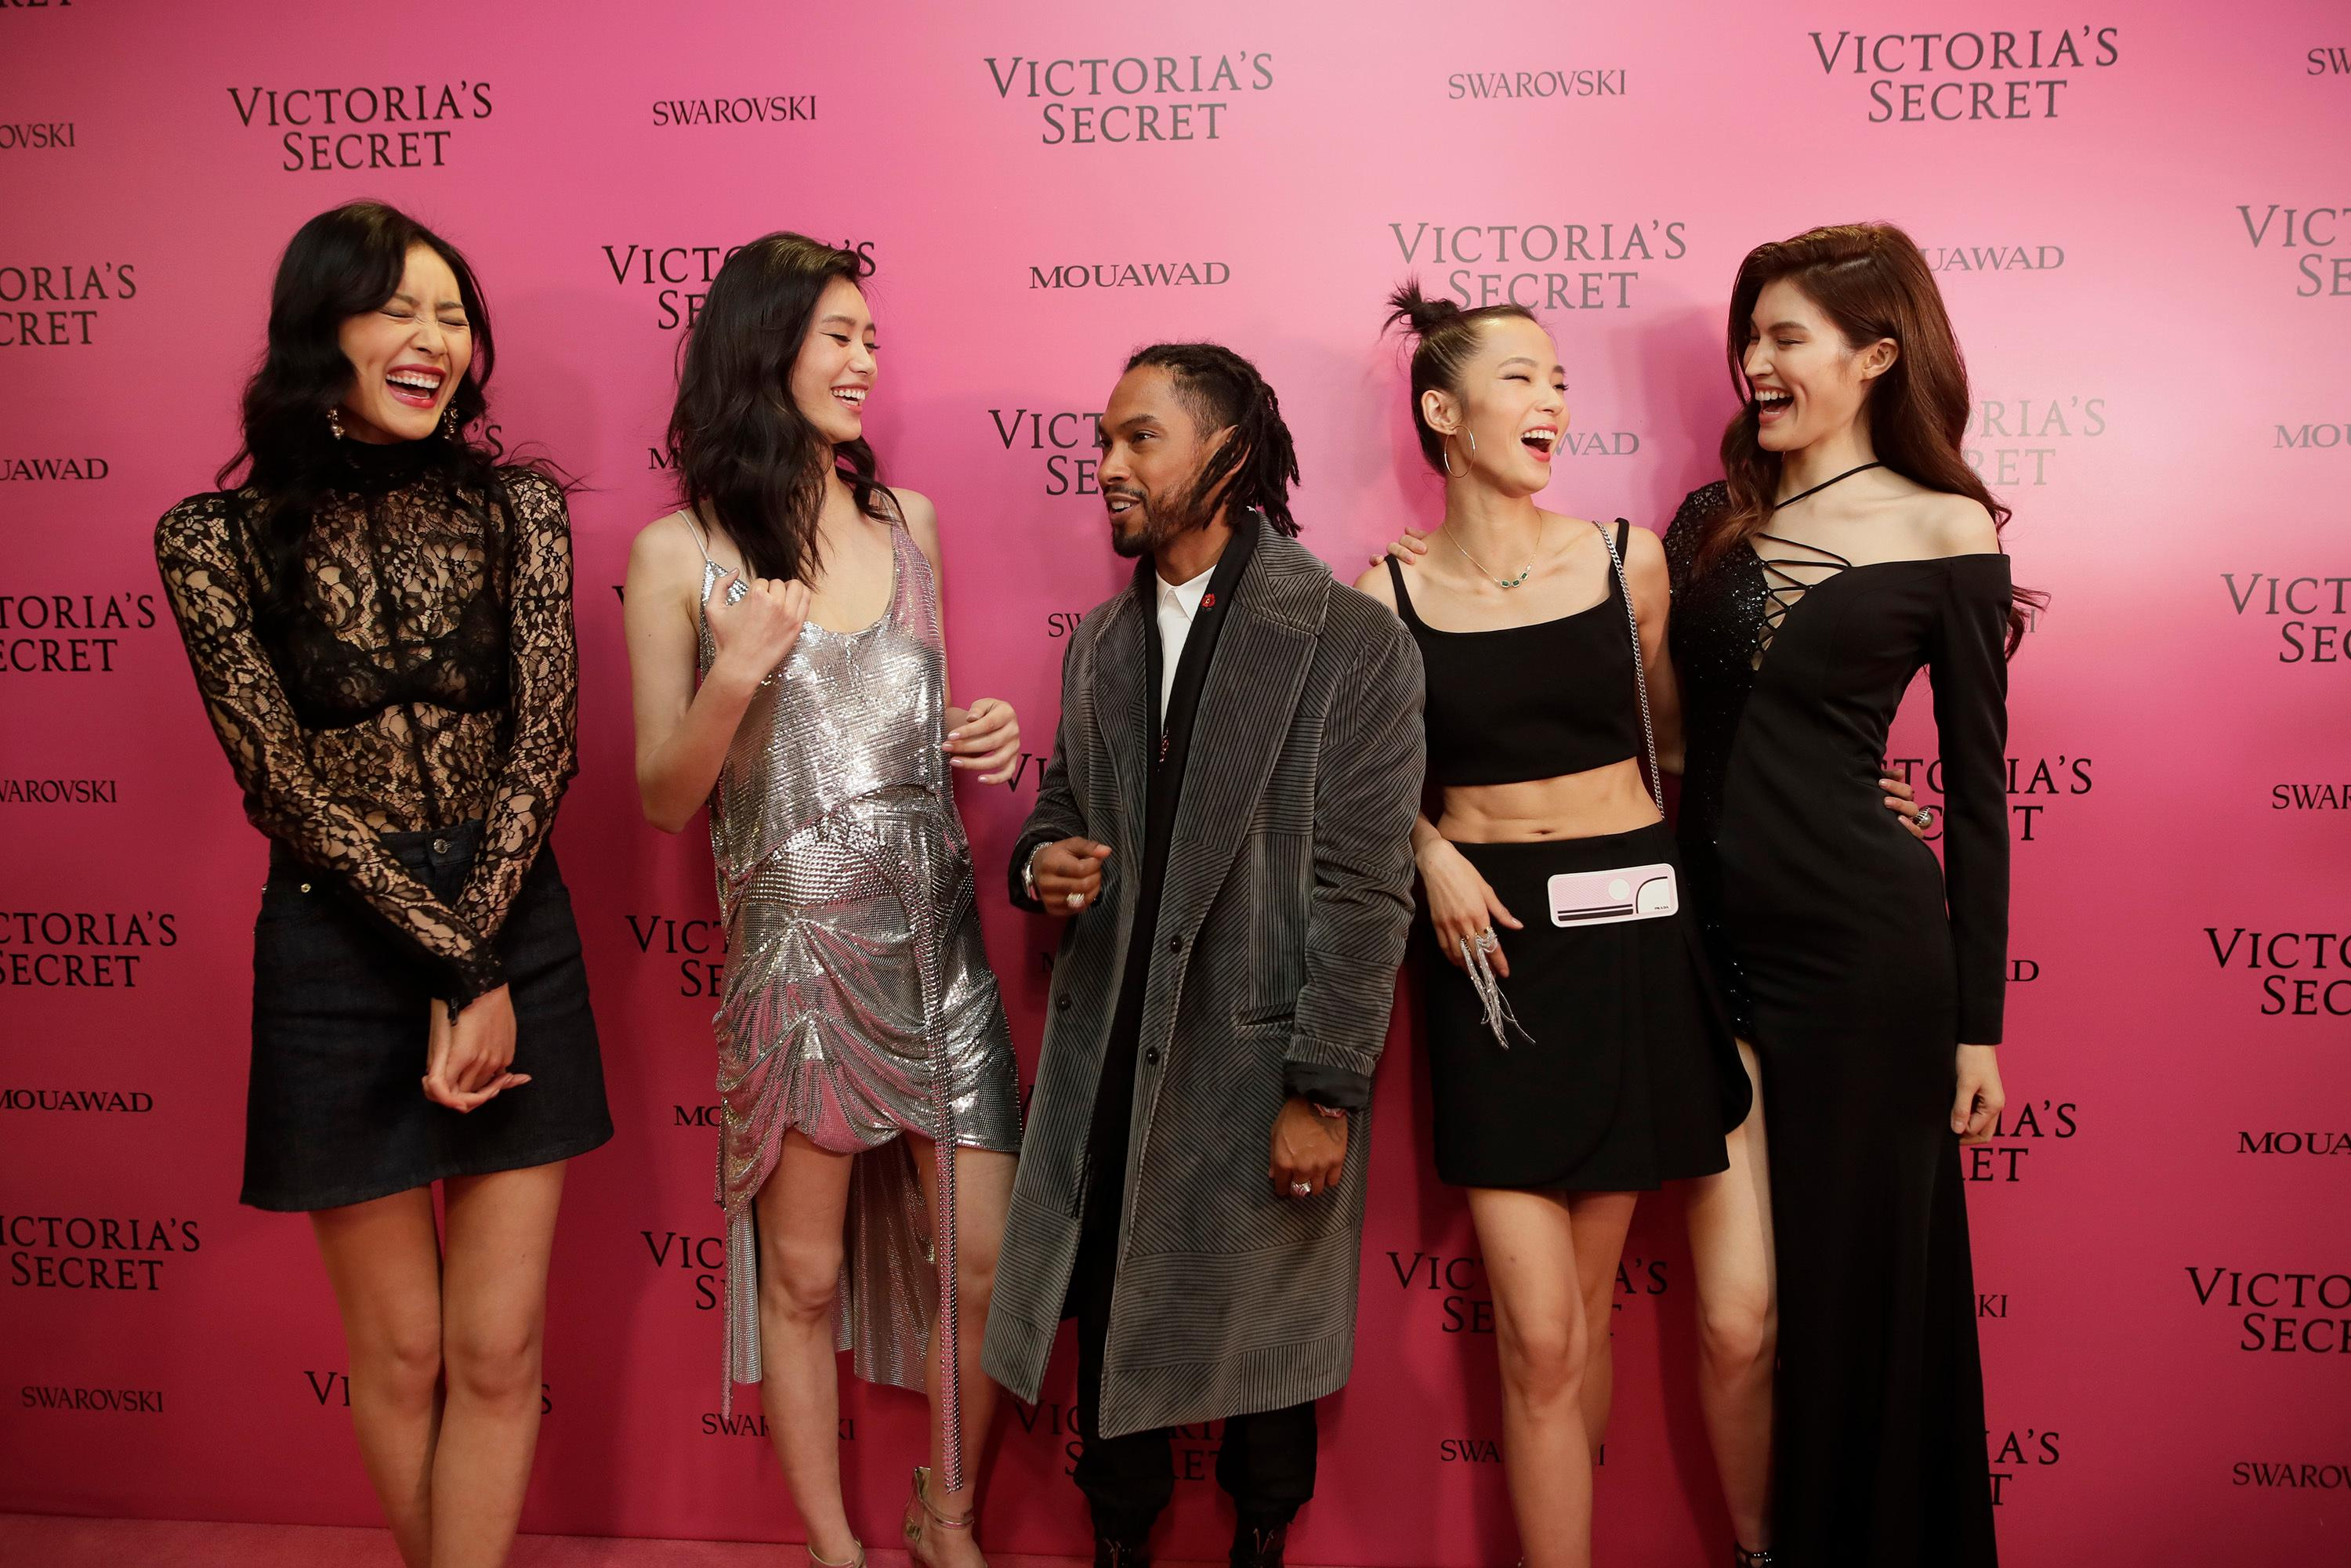 From left to right, Liu Wen, Xi Mengyao, Miguel Jontel Pimentel, Ju Xiaowen, He Sui pose for a photo, at the after party of the Victoria's Secret fashion show inside the Mercedes-Benz Arena in Shanghai, China, Monday, Nov. 20, 2017. (AP Photo)